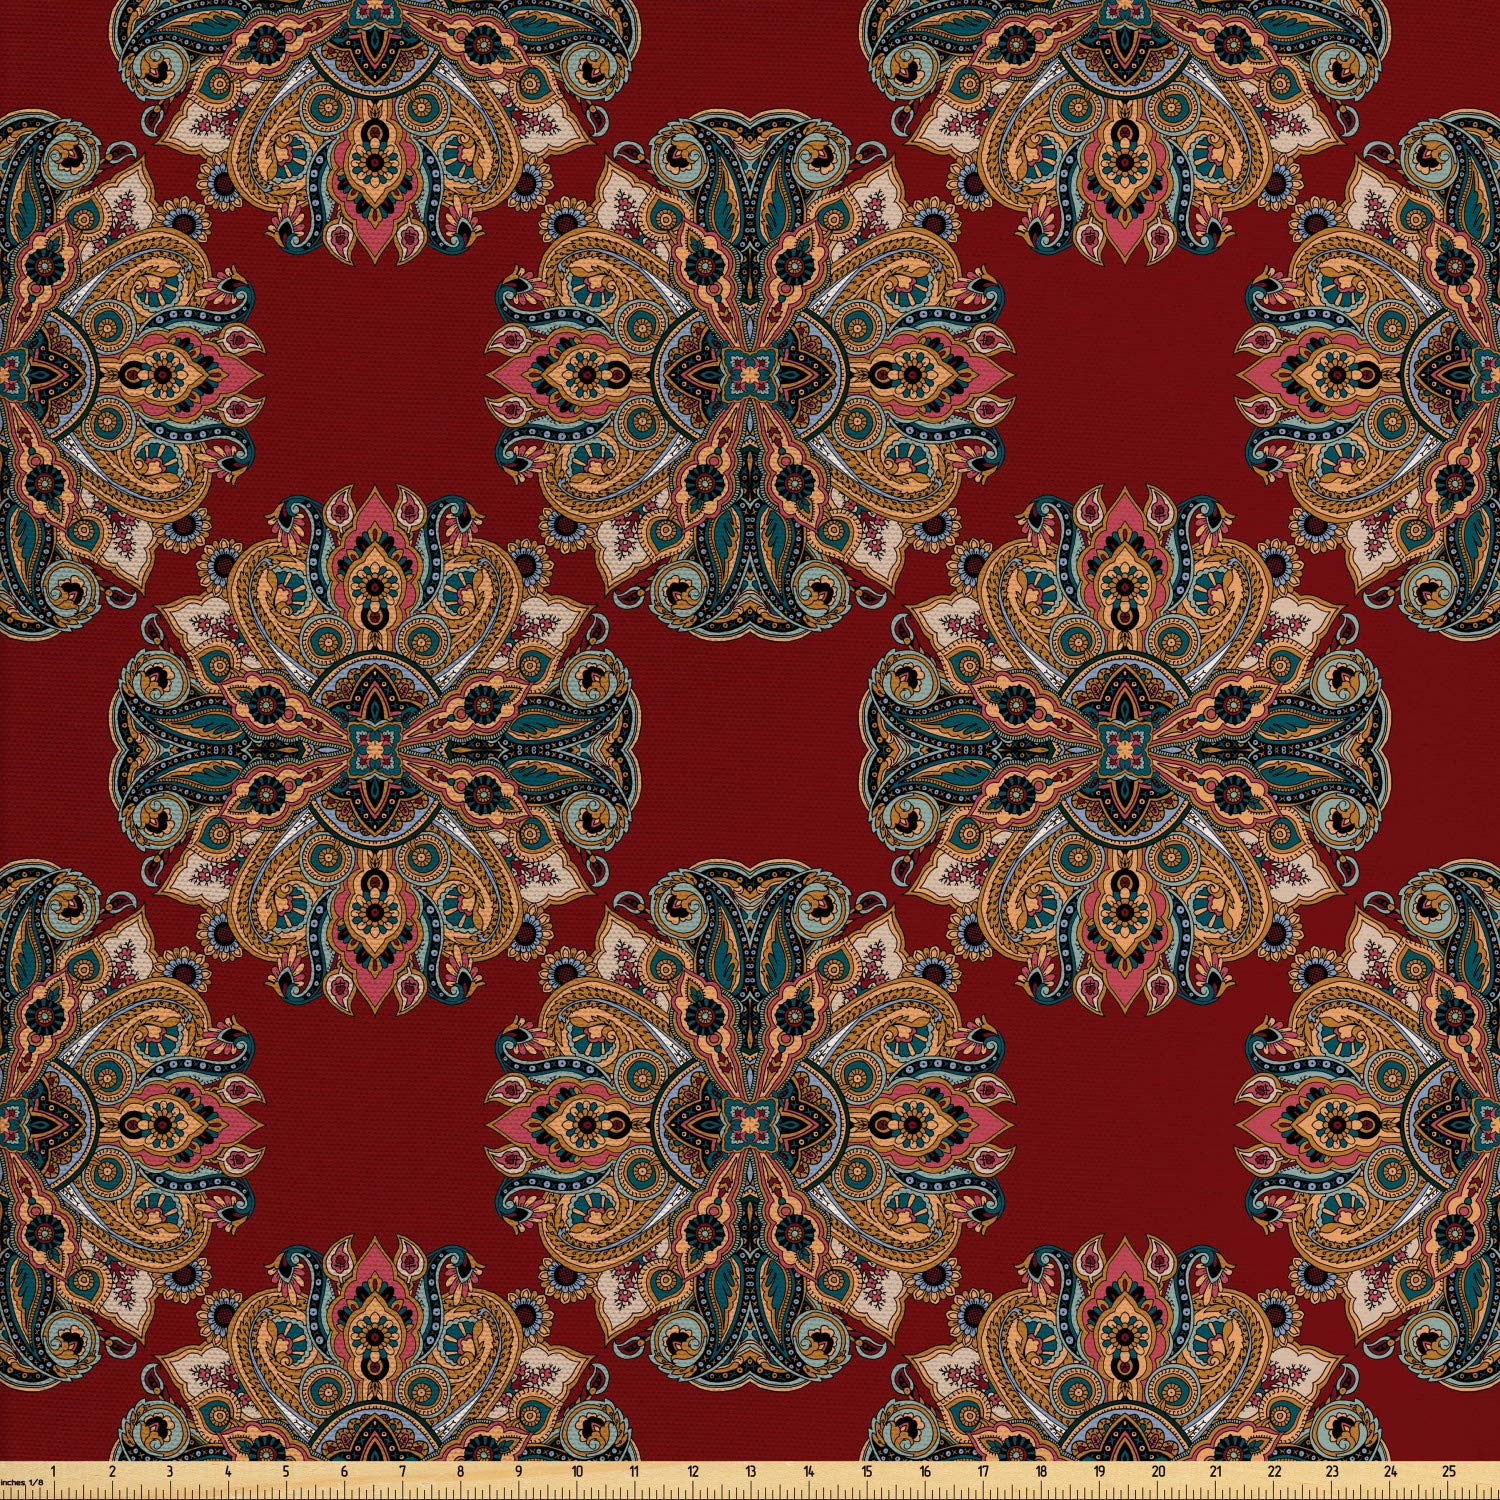 Lunarable Maroon Fabric by The Yard, Oriental Traditional Paisley Pattern Mandala Inspired Round Authentic Boho Folk Hues, Decorative Fabric for Upholstery and Home Accents,10 Yards, Multicolor